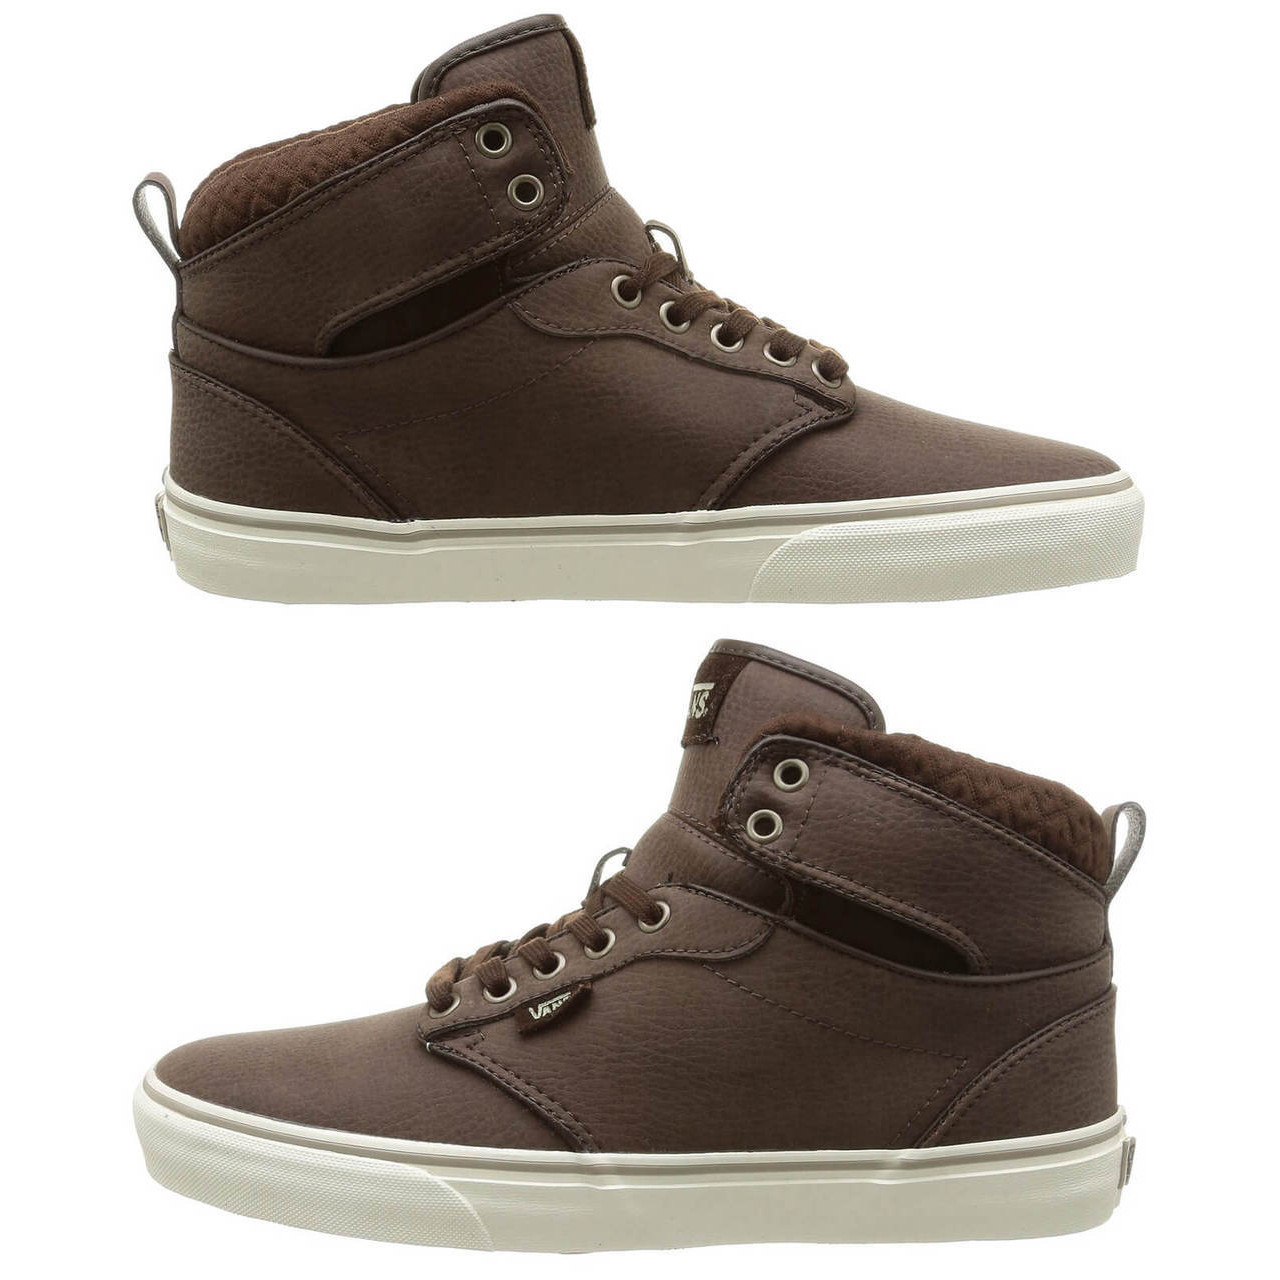 1ef34cc5fc15 Leather Vans Shoes - Men s Atwood High Top Leather Shoes Brown ...